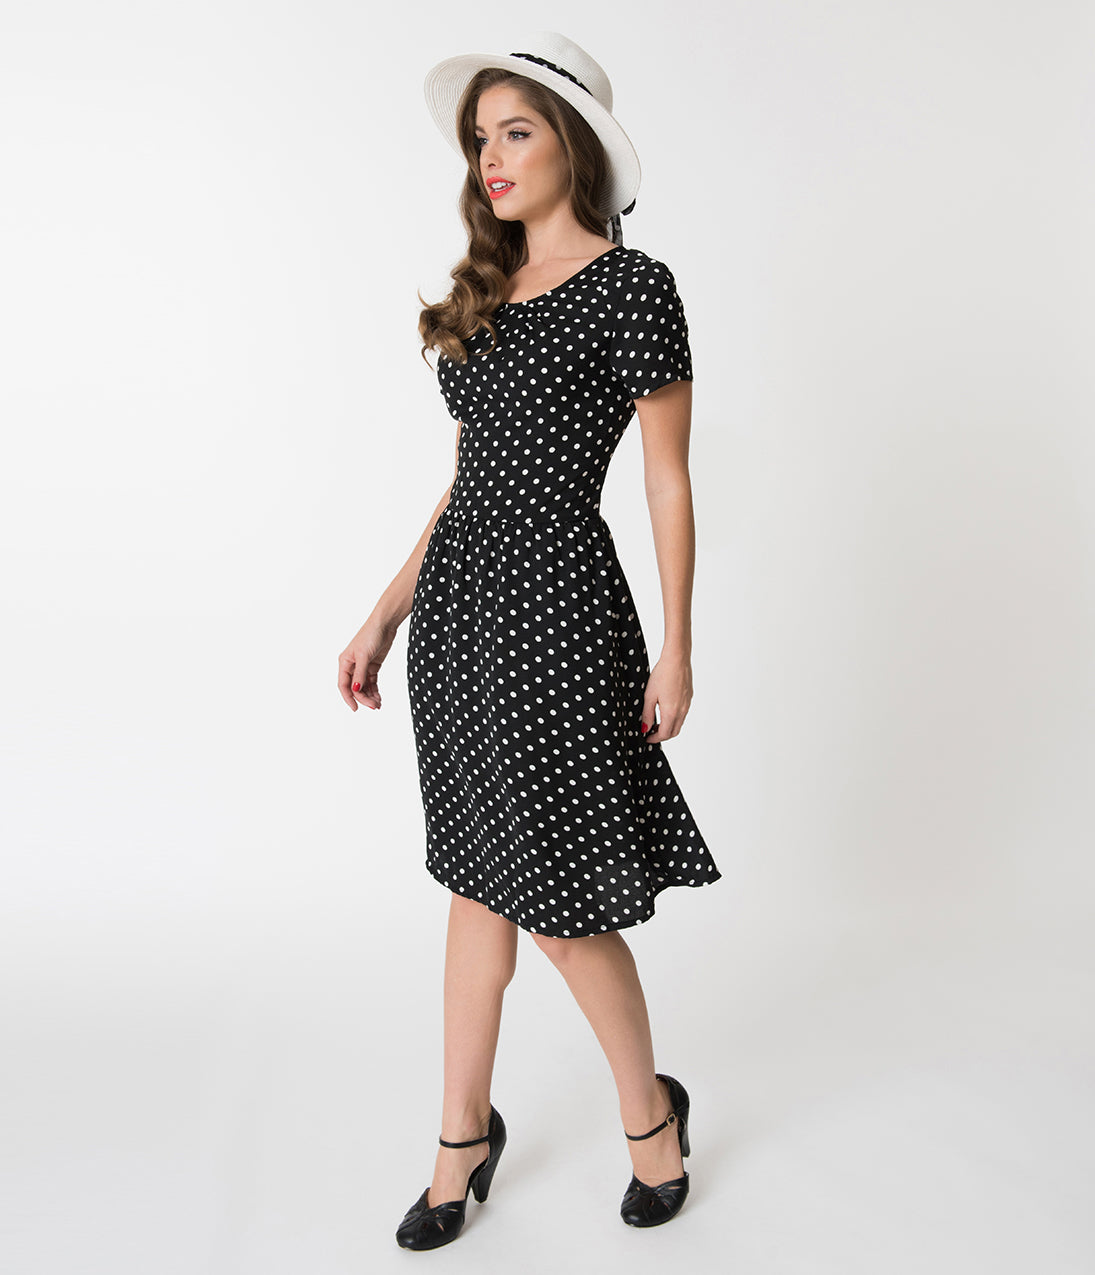 1950s Housewife Dress | 50s Day Dresses 1950S Style Black  White Polka Dot Short Sleeve Elizabeth Swing Dress $44.00 AT vintagedancer.com